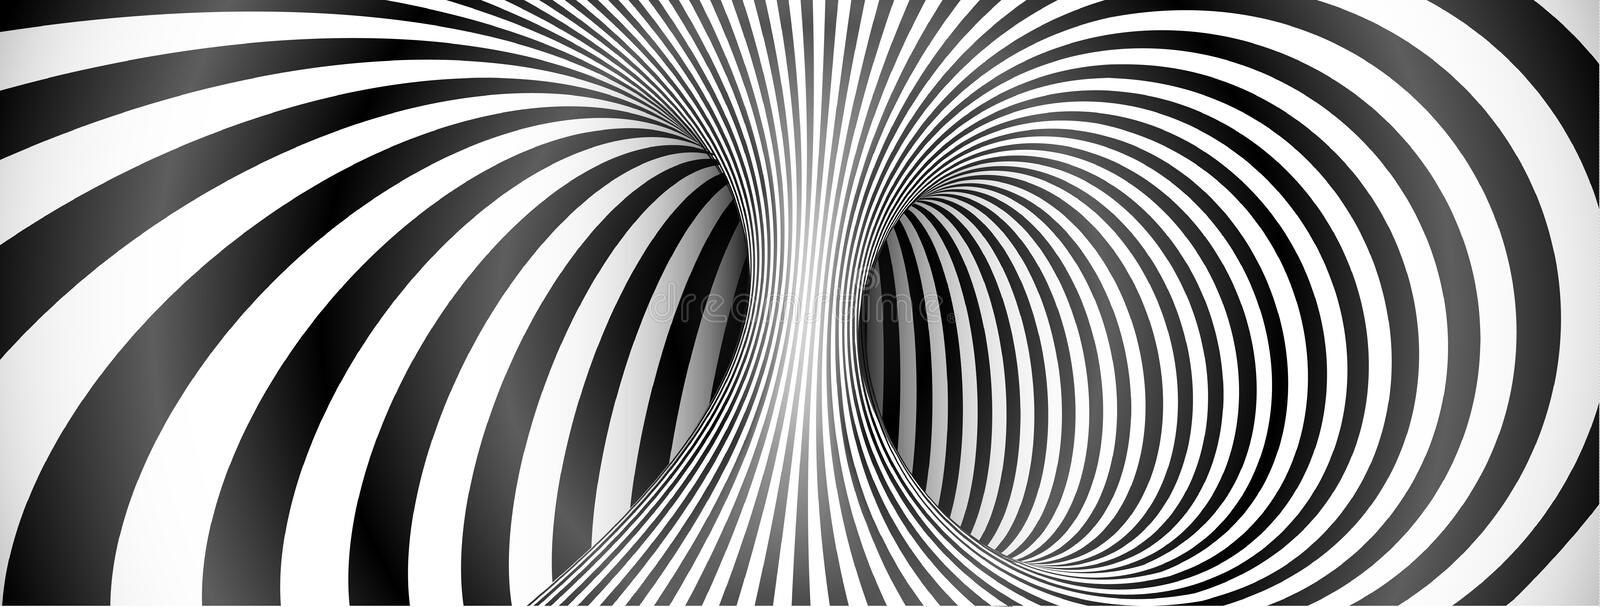 Line Optical Designory : Black and white lines optical illusion background stock